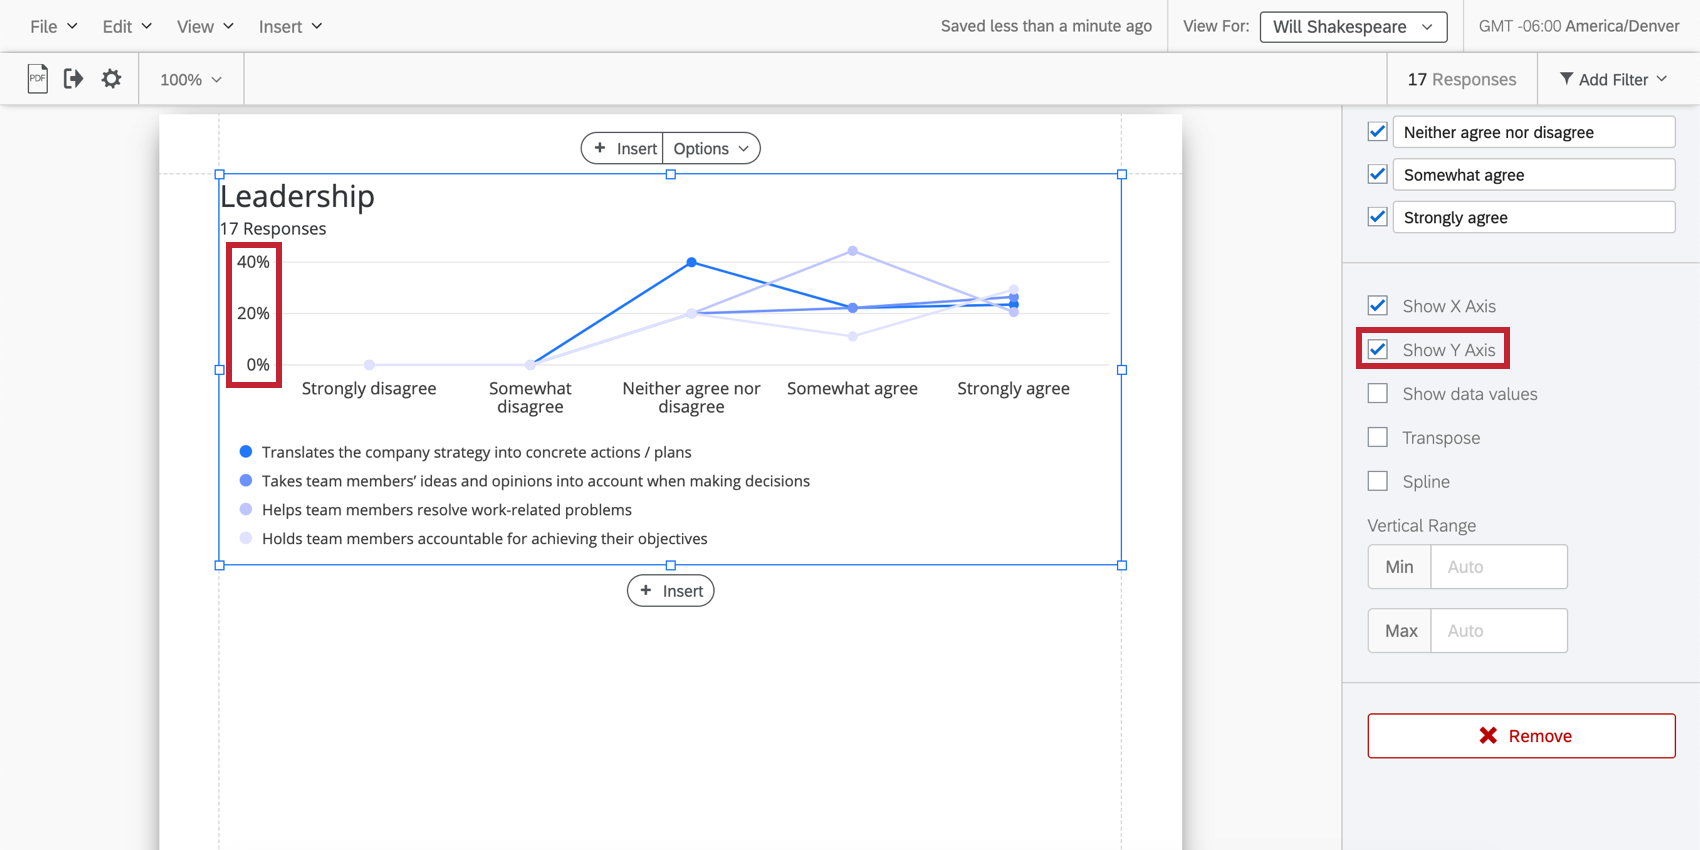 selecting show y axis shows number labels in the left side